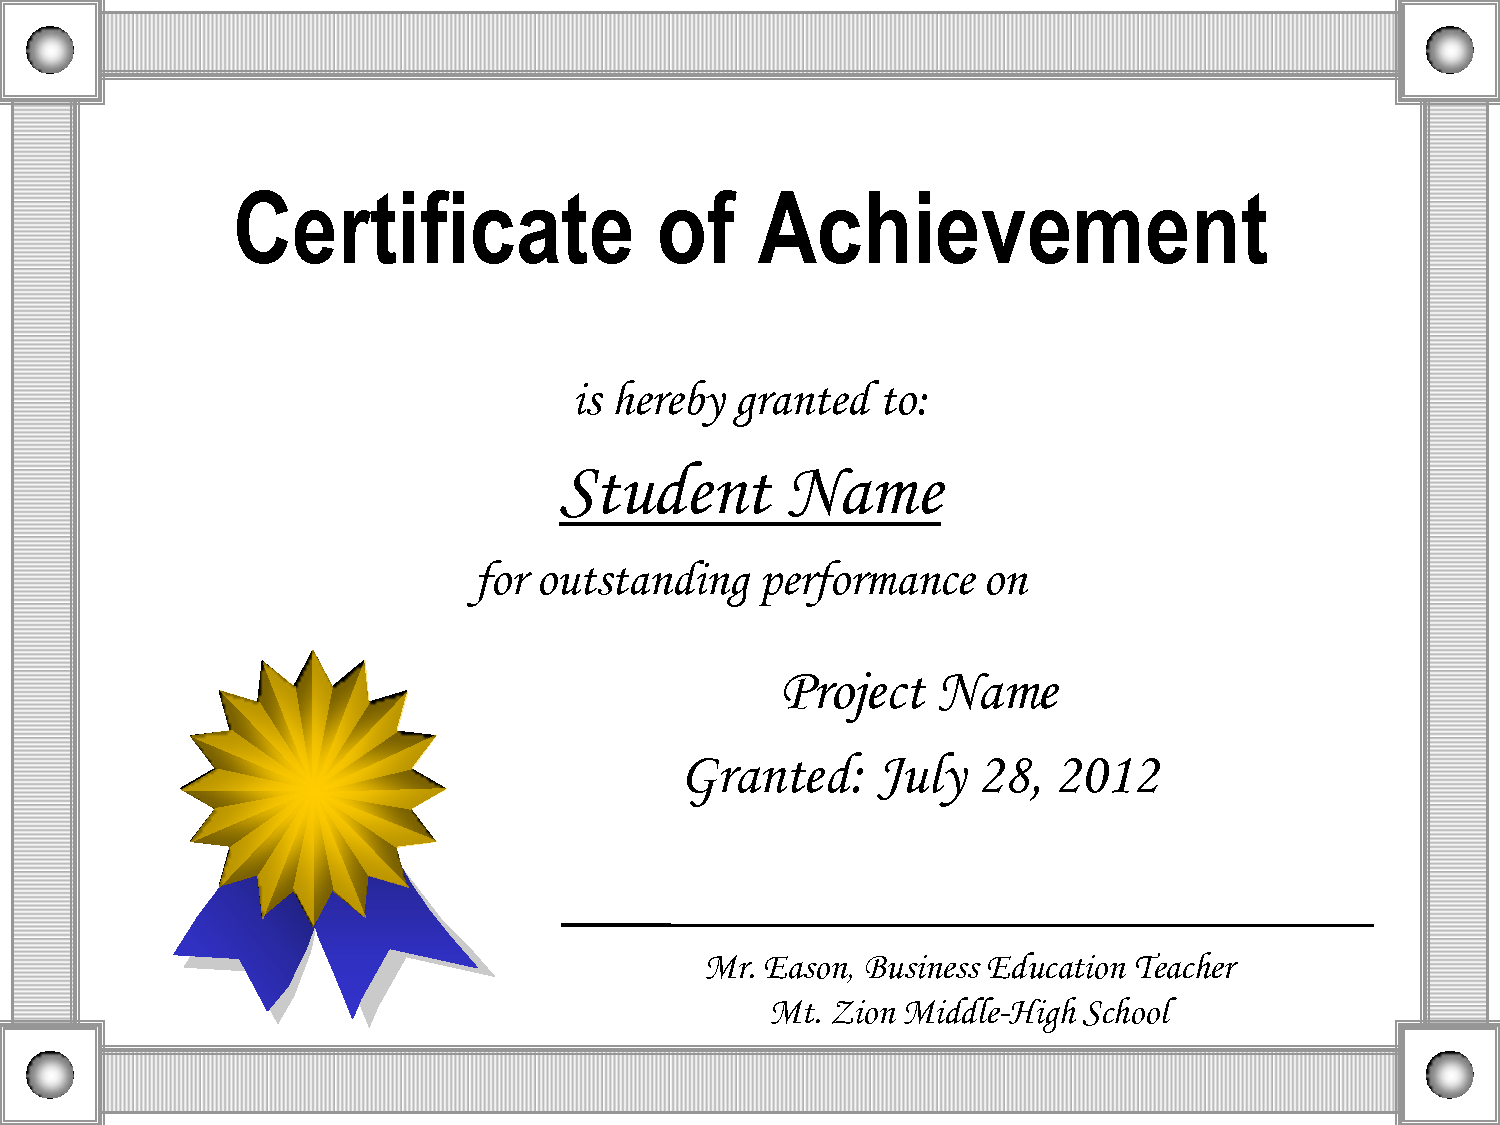 Achievement Certificate Template Word from library.itsnudimension.com